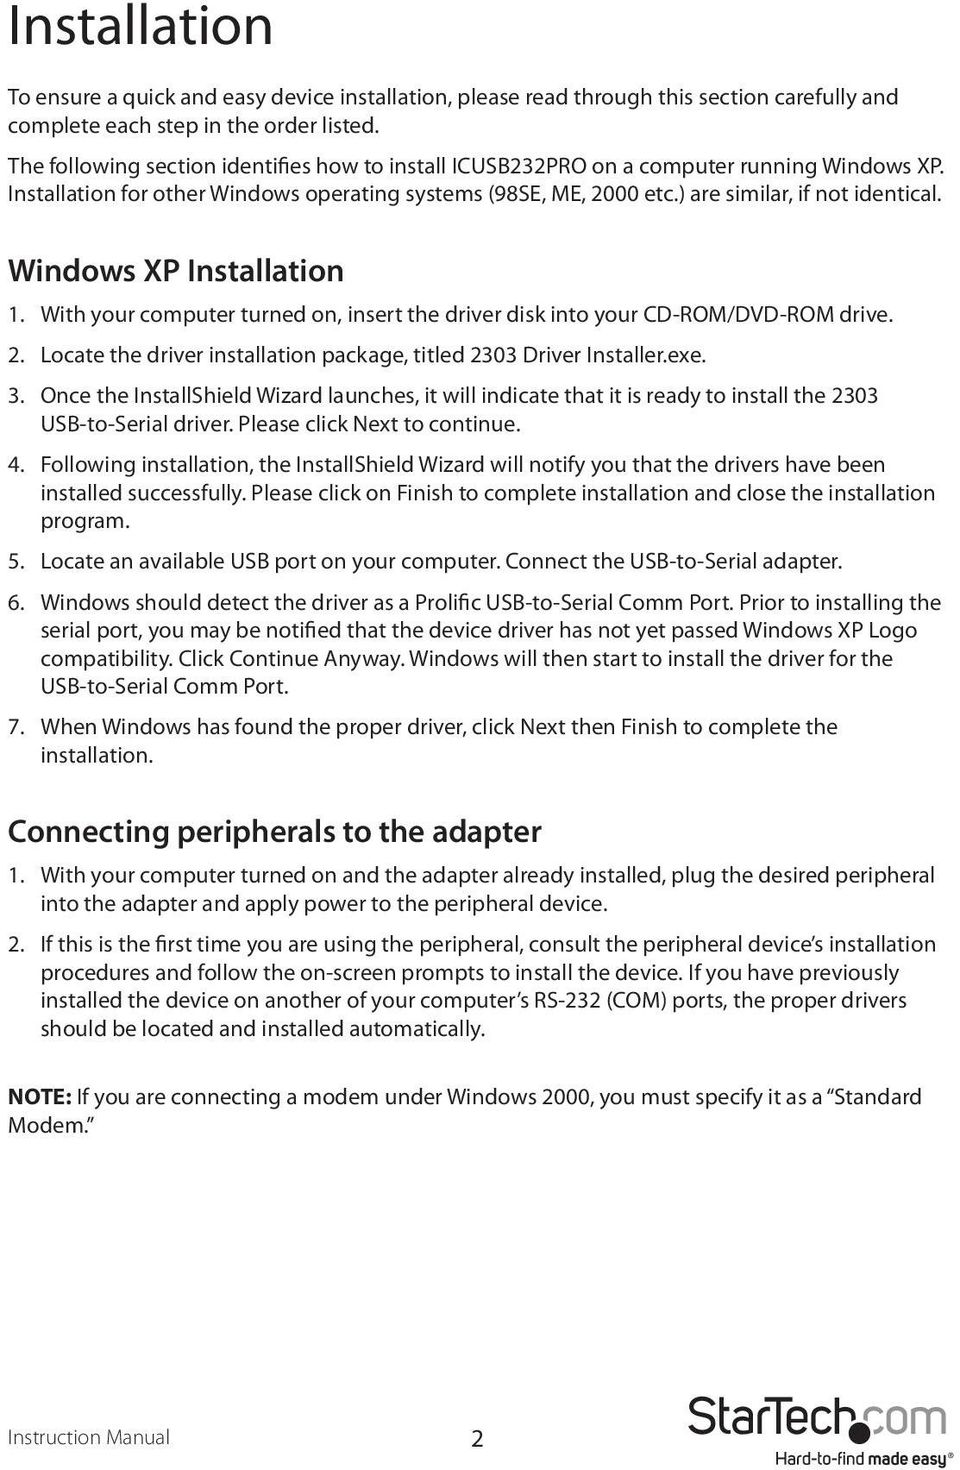 Windows XP Installation 1. With your computer turned on, insert the driver disk into your CD-ROM/DVD-ROM drive. 2. Locate the driver installation package, titled 2303 Driver Installer.exe. 3.